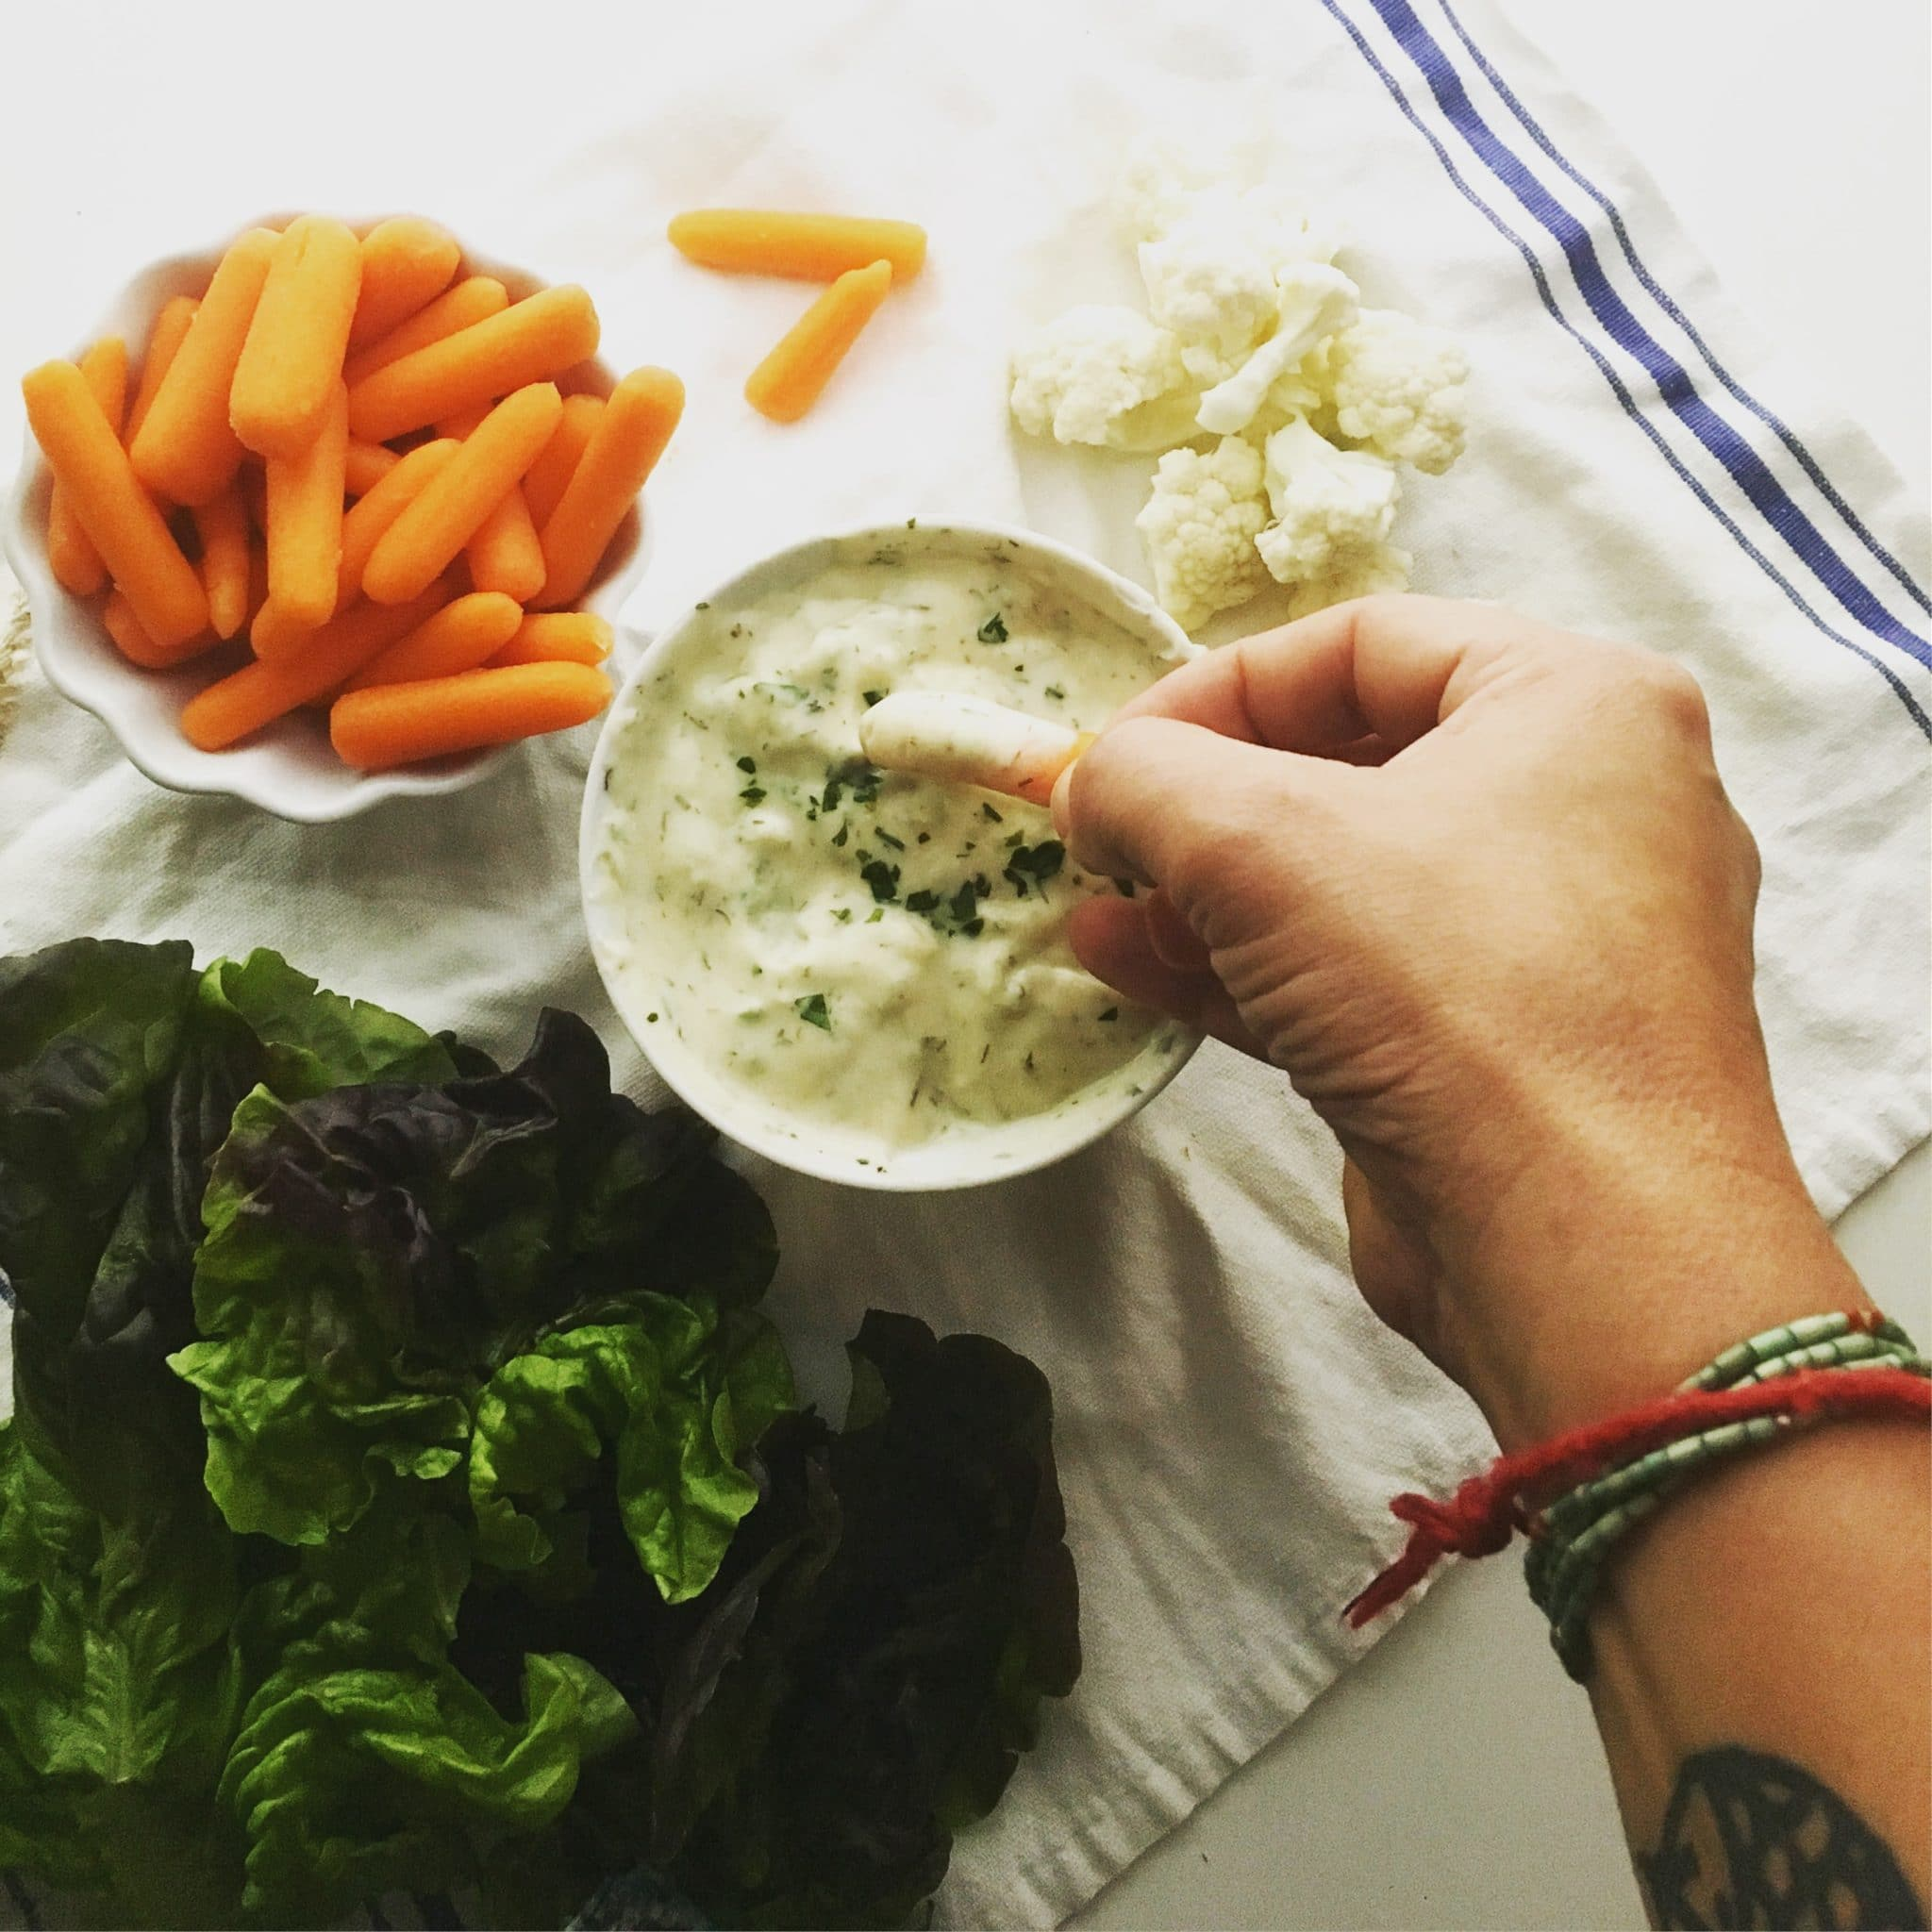 Looking down on a bowl of ranch dip and a hand reaches in to dip a baby carrot.